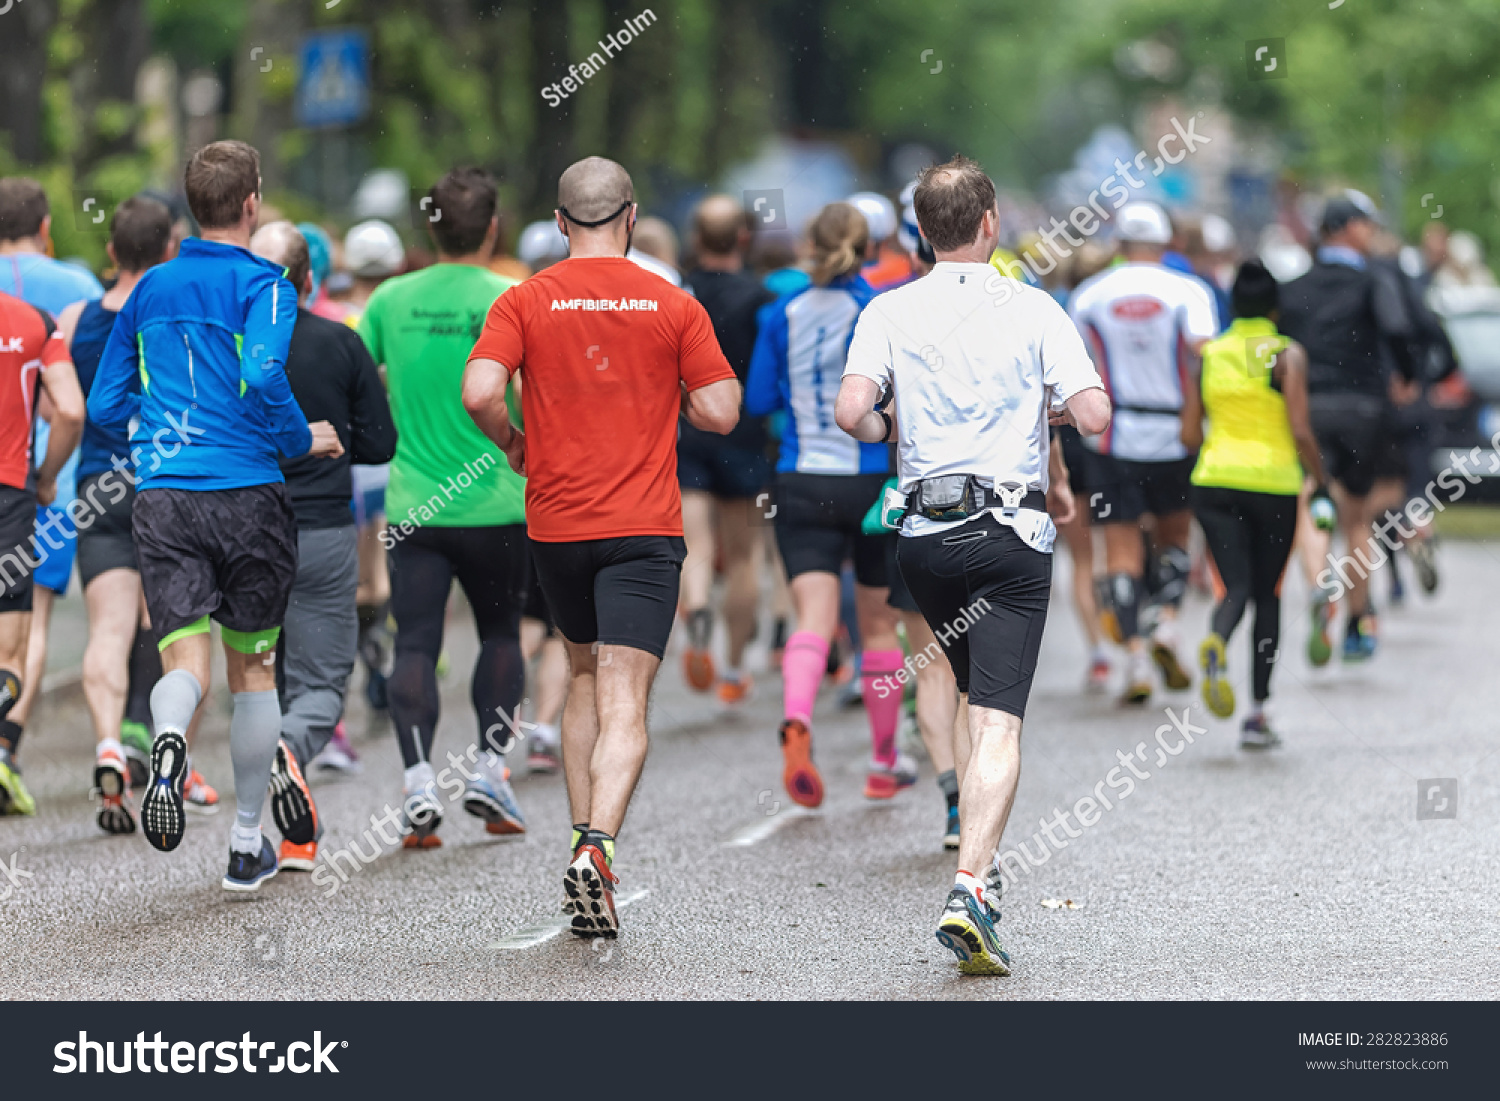 STOCKHOLM MAY 30 Back of a group of people at the streets of Stockholm at ASICS Stockholm Marathon 2015 May 30 2015 in Stockholm Sweden Runners from 101 nations were registered in 2015